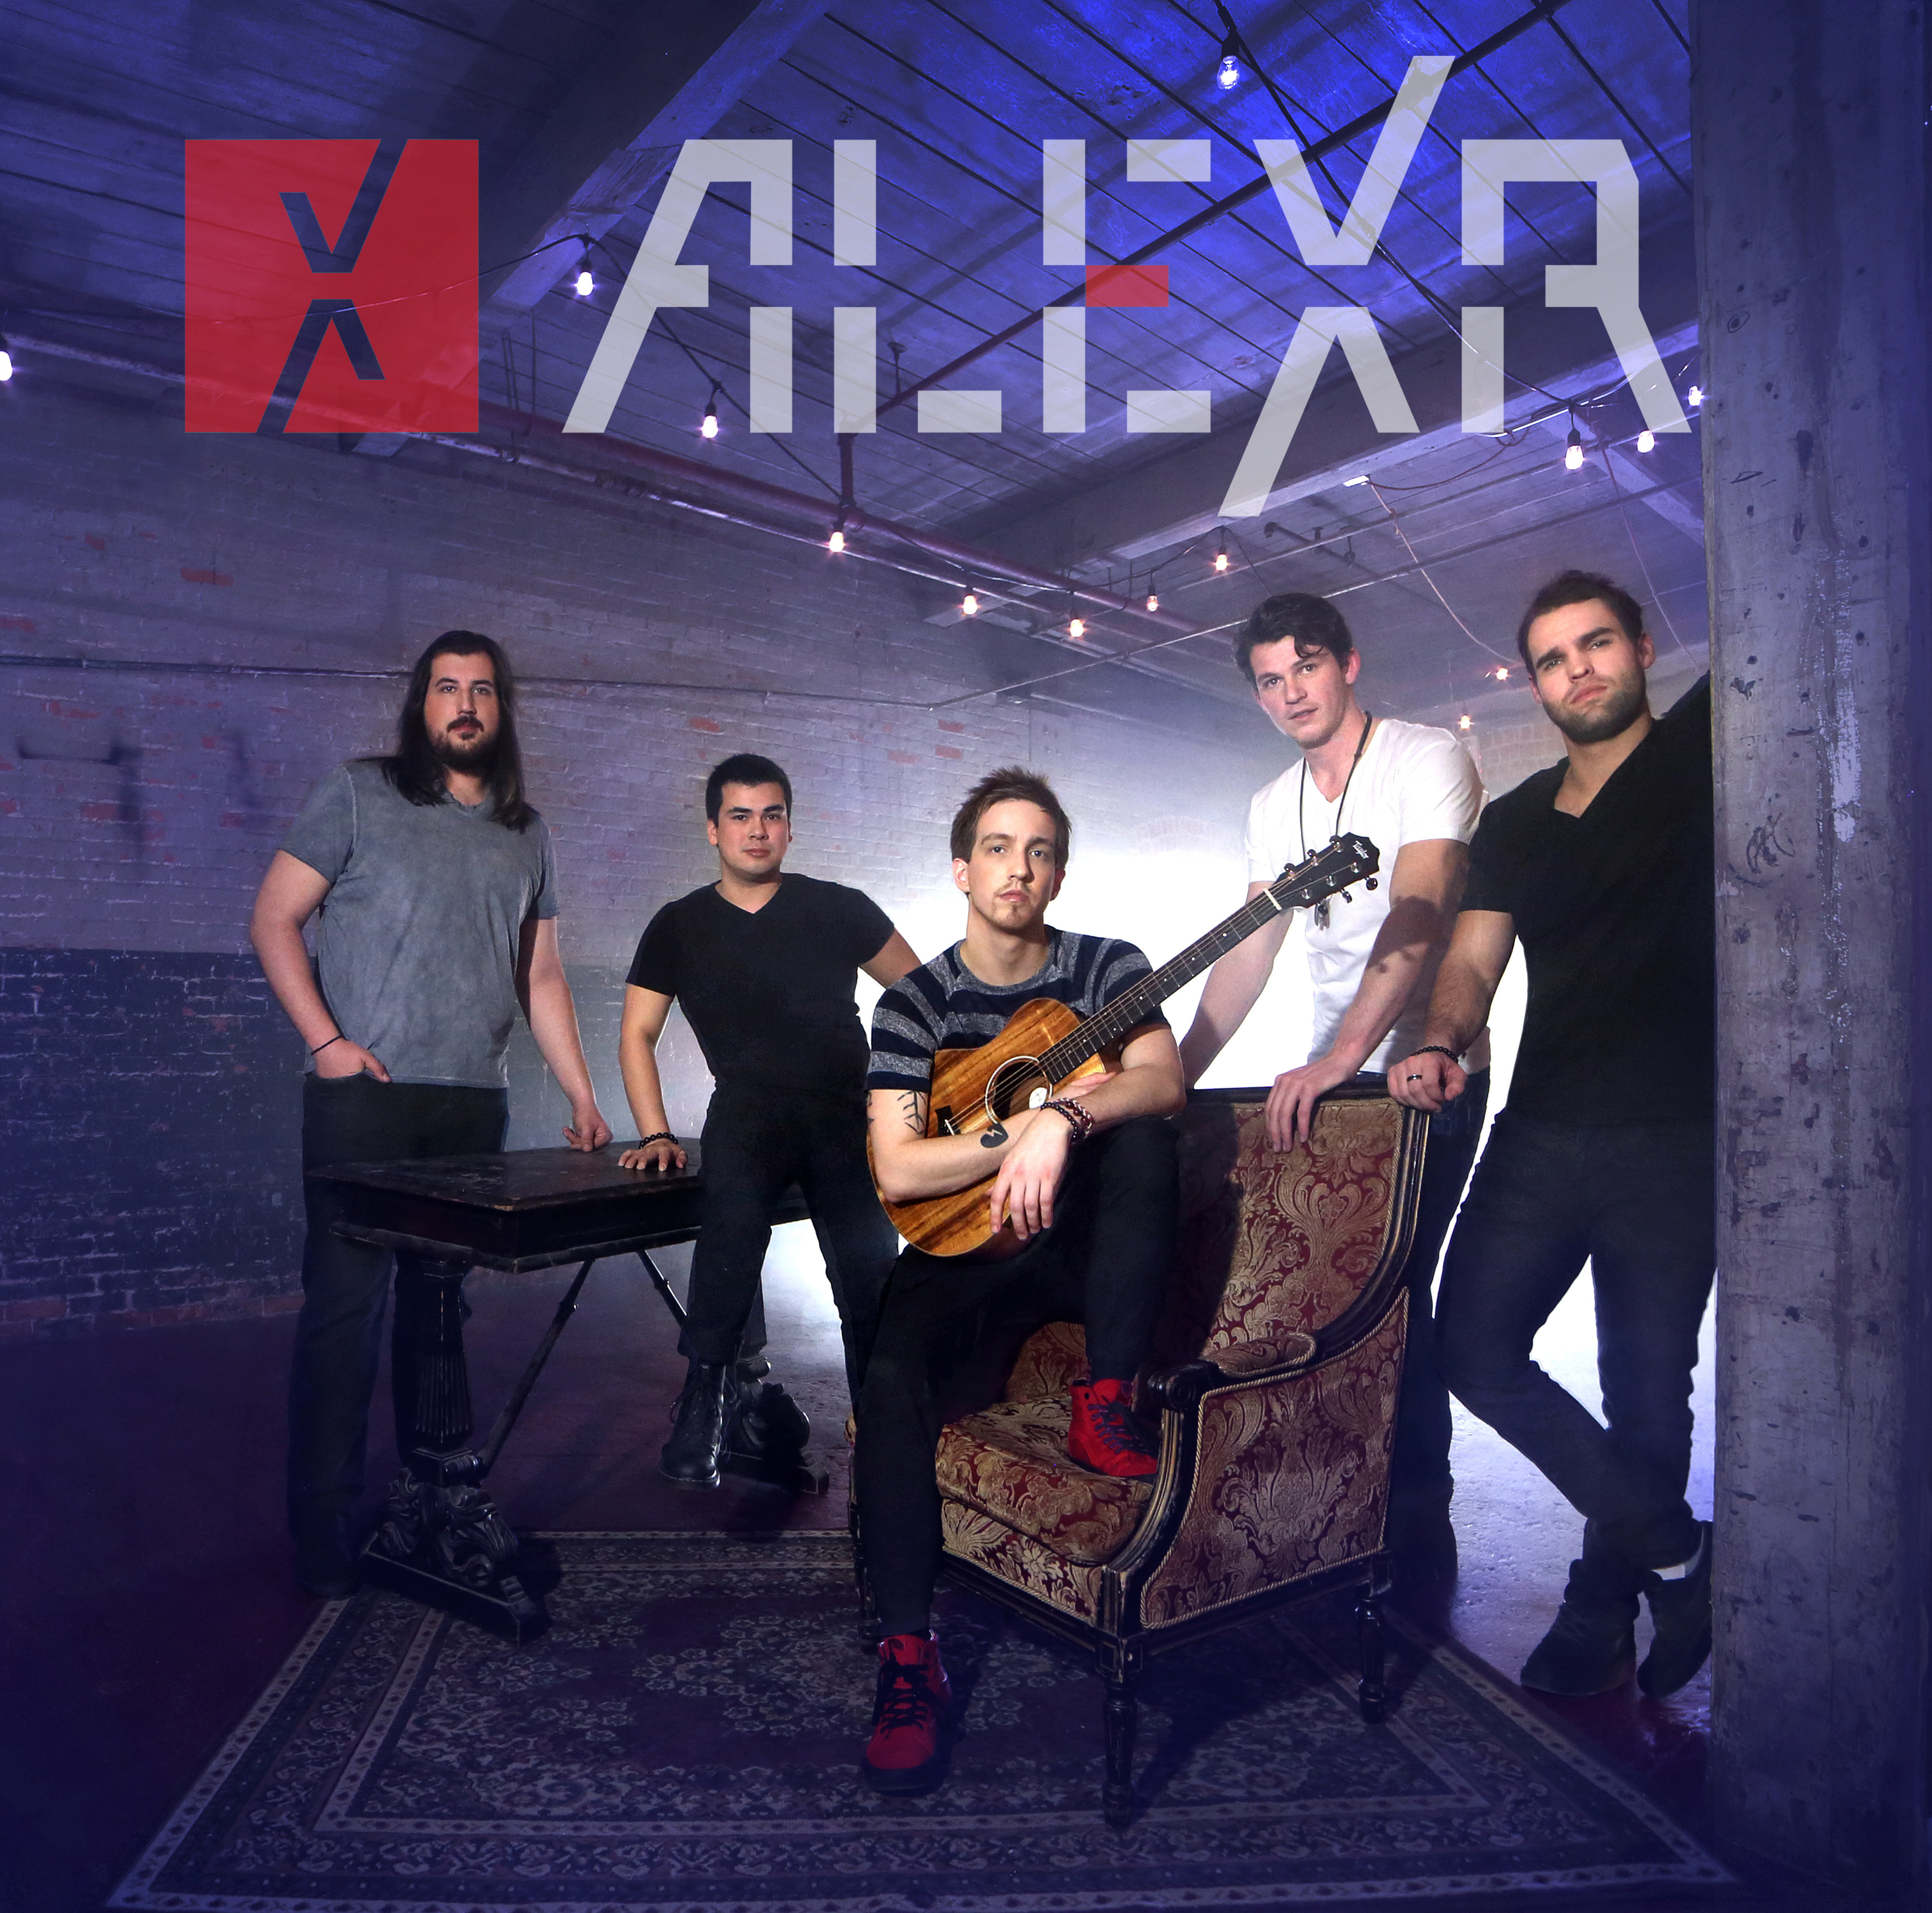 ALEXR | LIVE AT THE MULE SPINNER